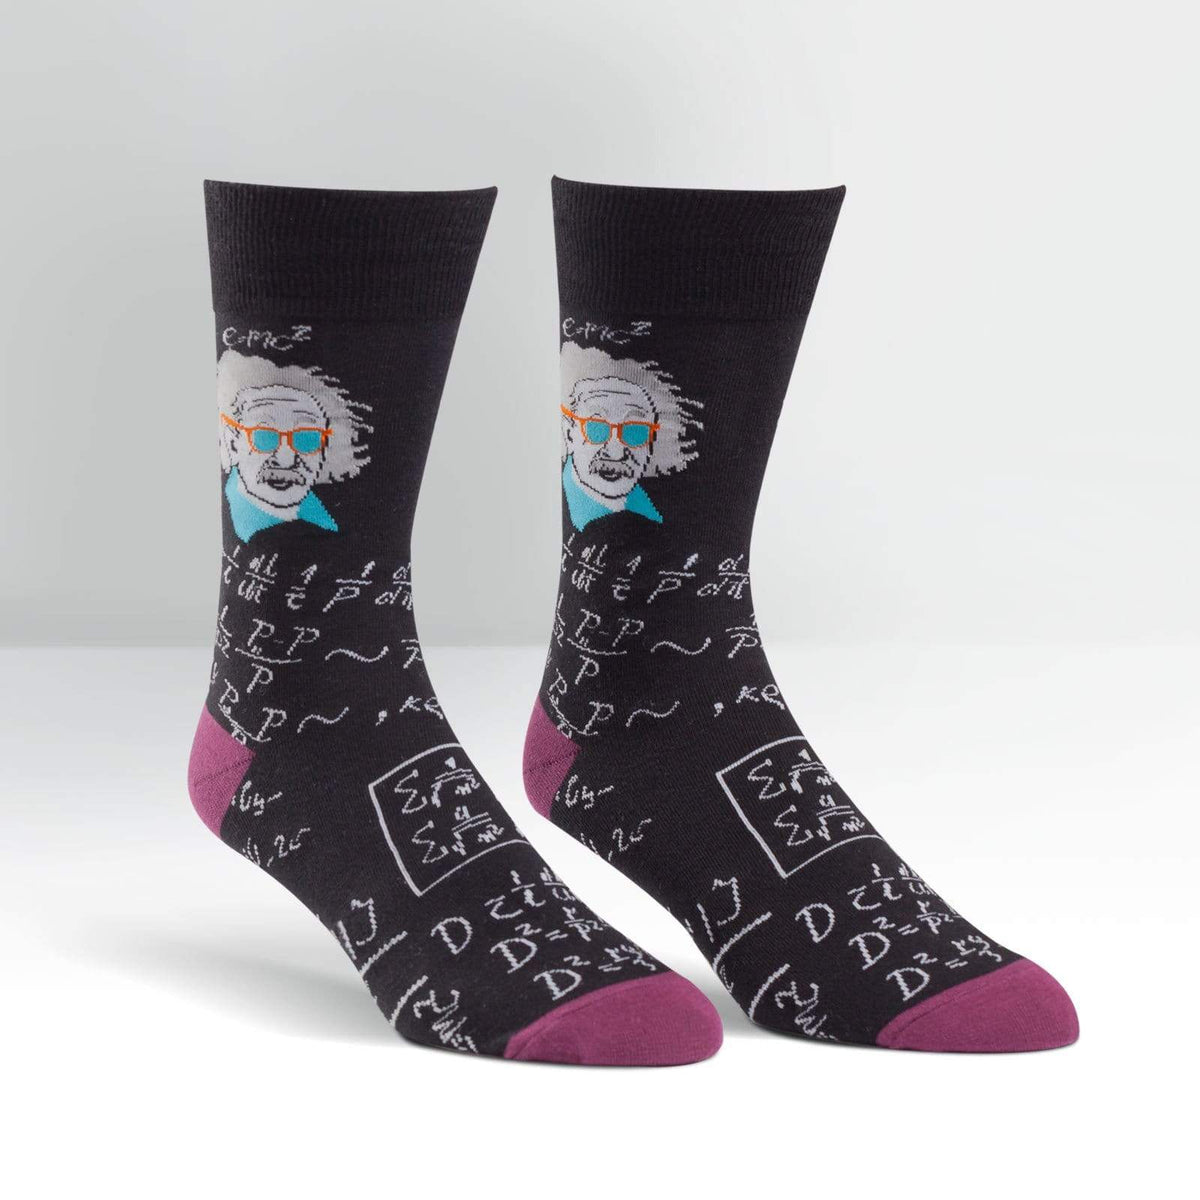 Relatively Cool Socks Men's Crew Sock Black